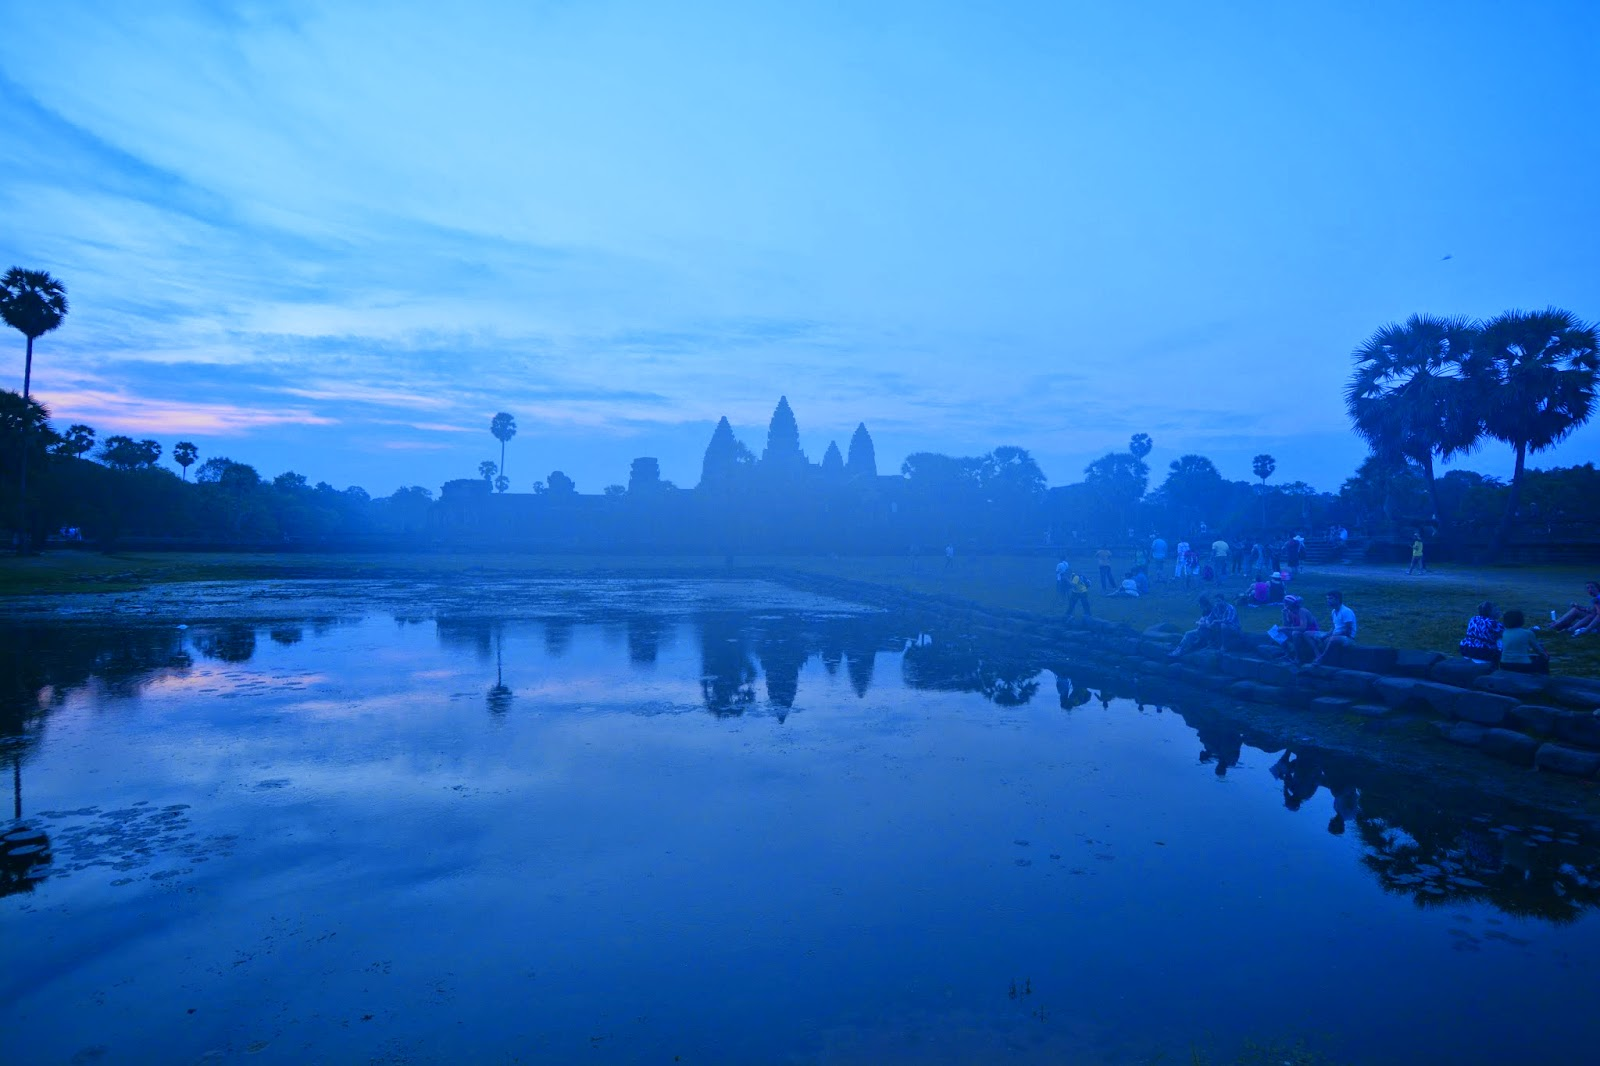 angkor wat cambodia sunrise top tips travel holiday vacation